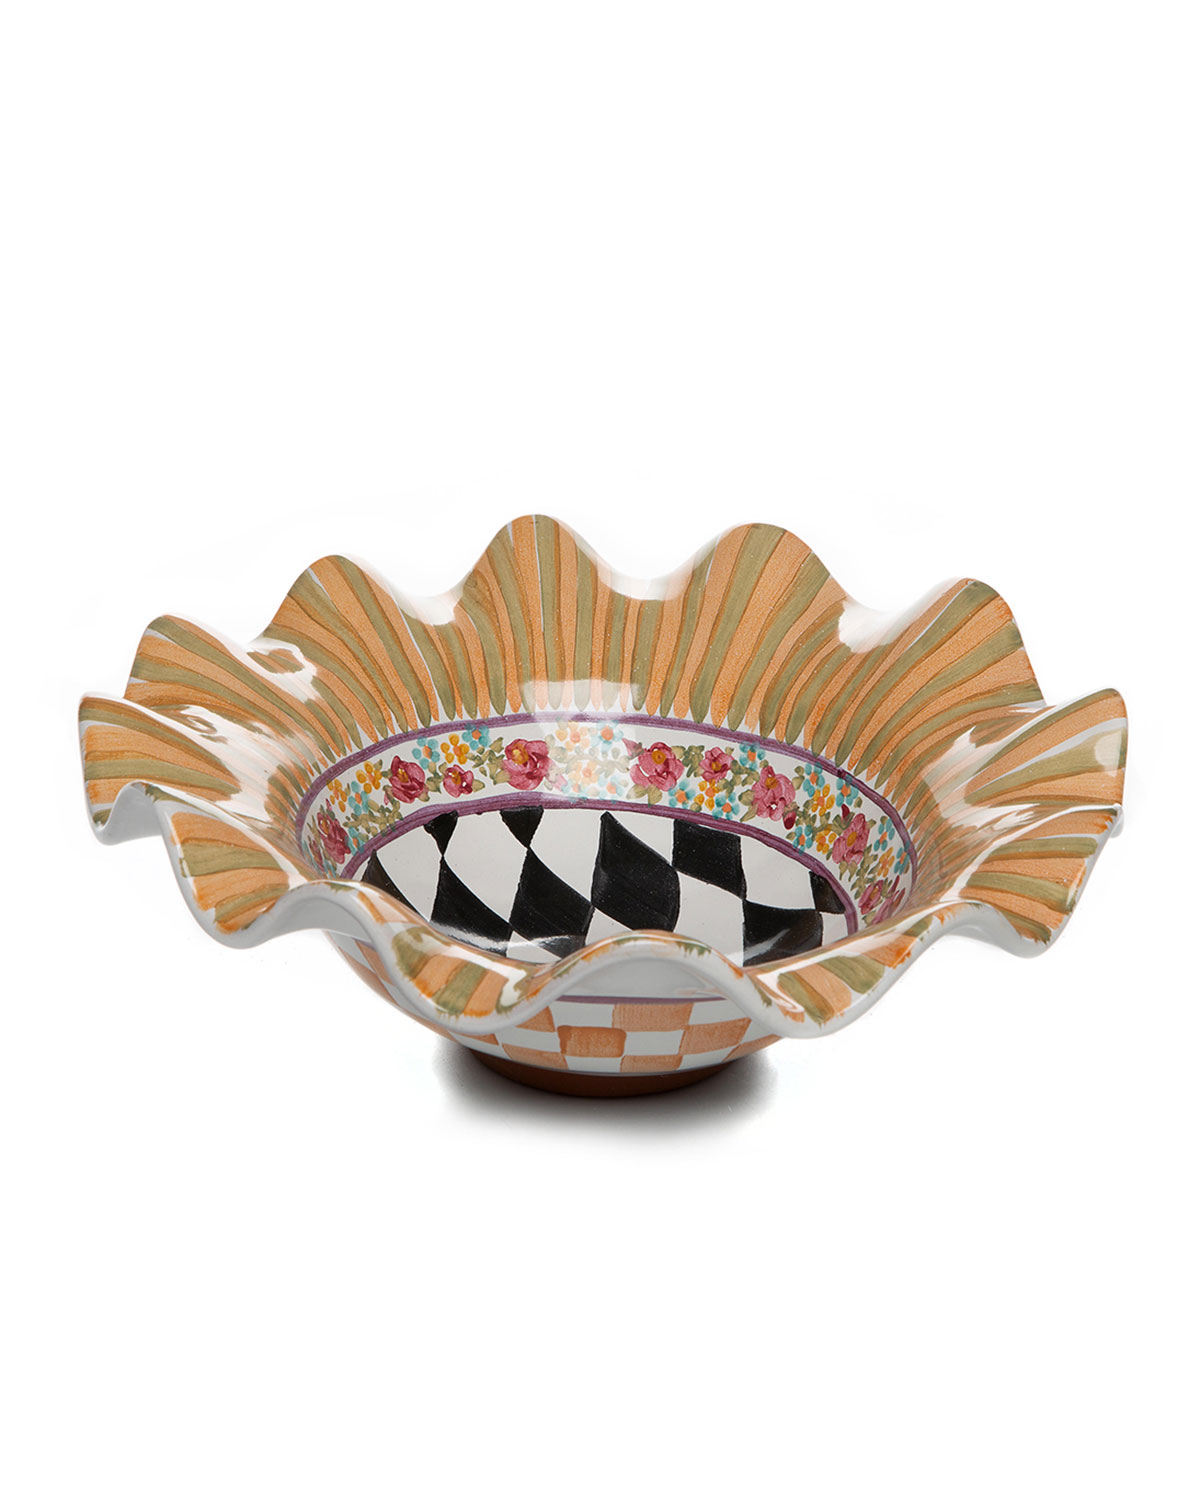 Mackenzie-Childs TAYLOR SMALL SERVING BOWL ODD FELLOWS